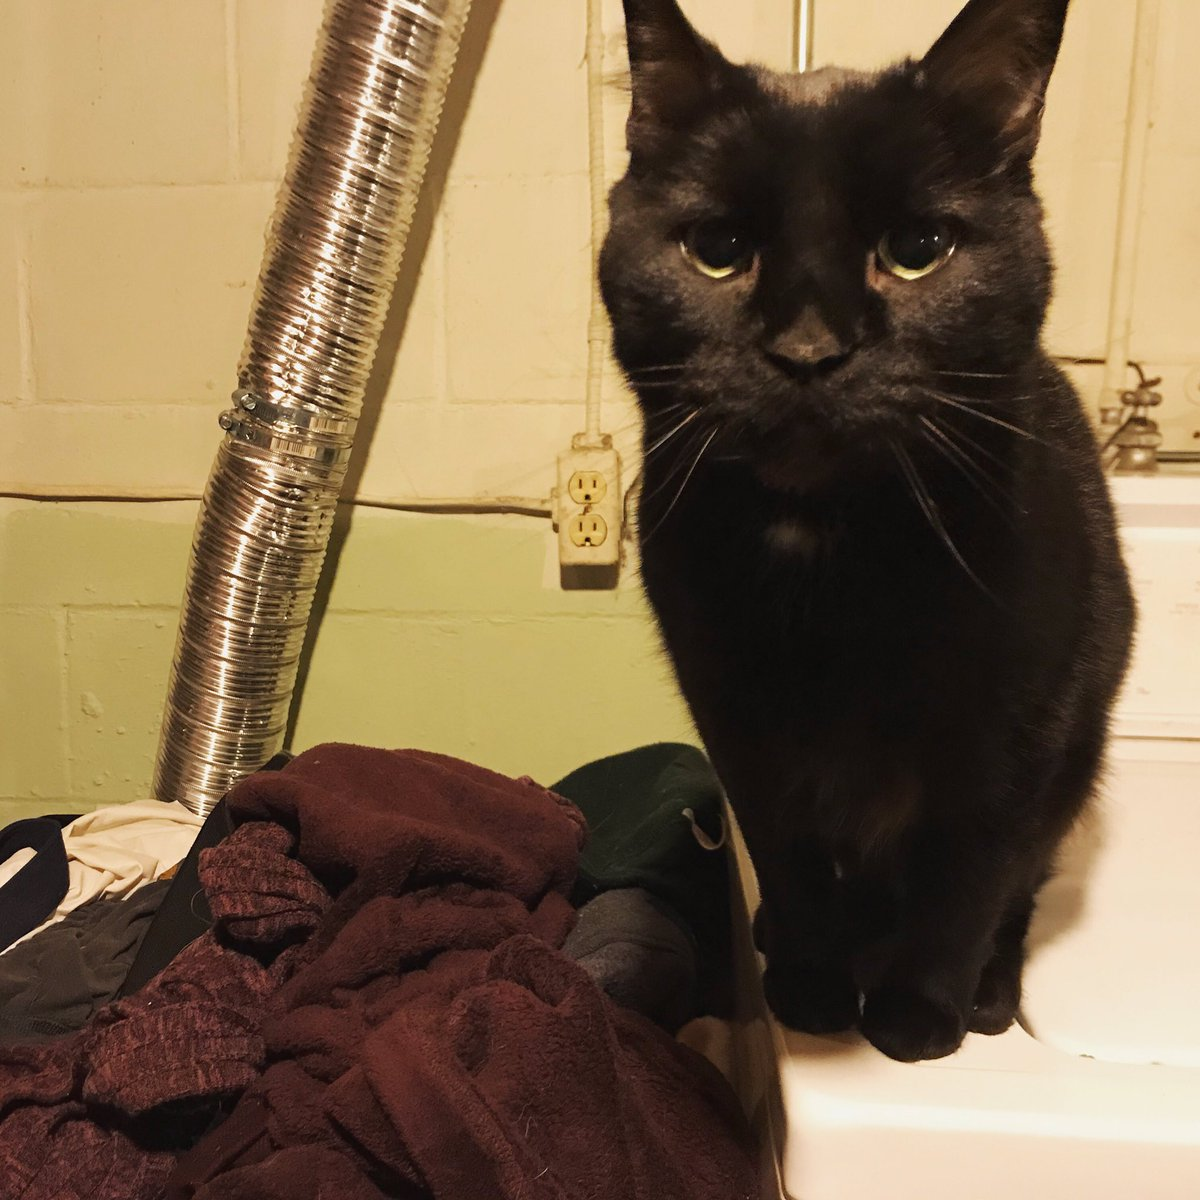 It's Missouri Furry Friday!  This is Shibby. She's from St. Louis and was adopted from the APA.   She enjoys folding laundry so she can sleep in it. She believes actions are louder than meows. Her favorite Italian dish is spaghetti and meatballs with extra sauce.